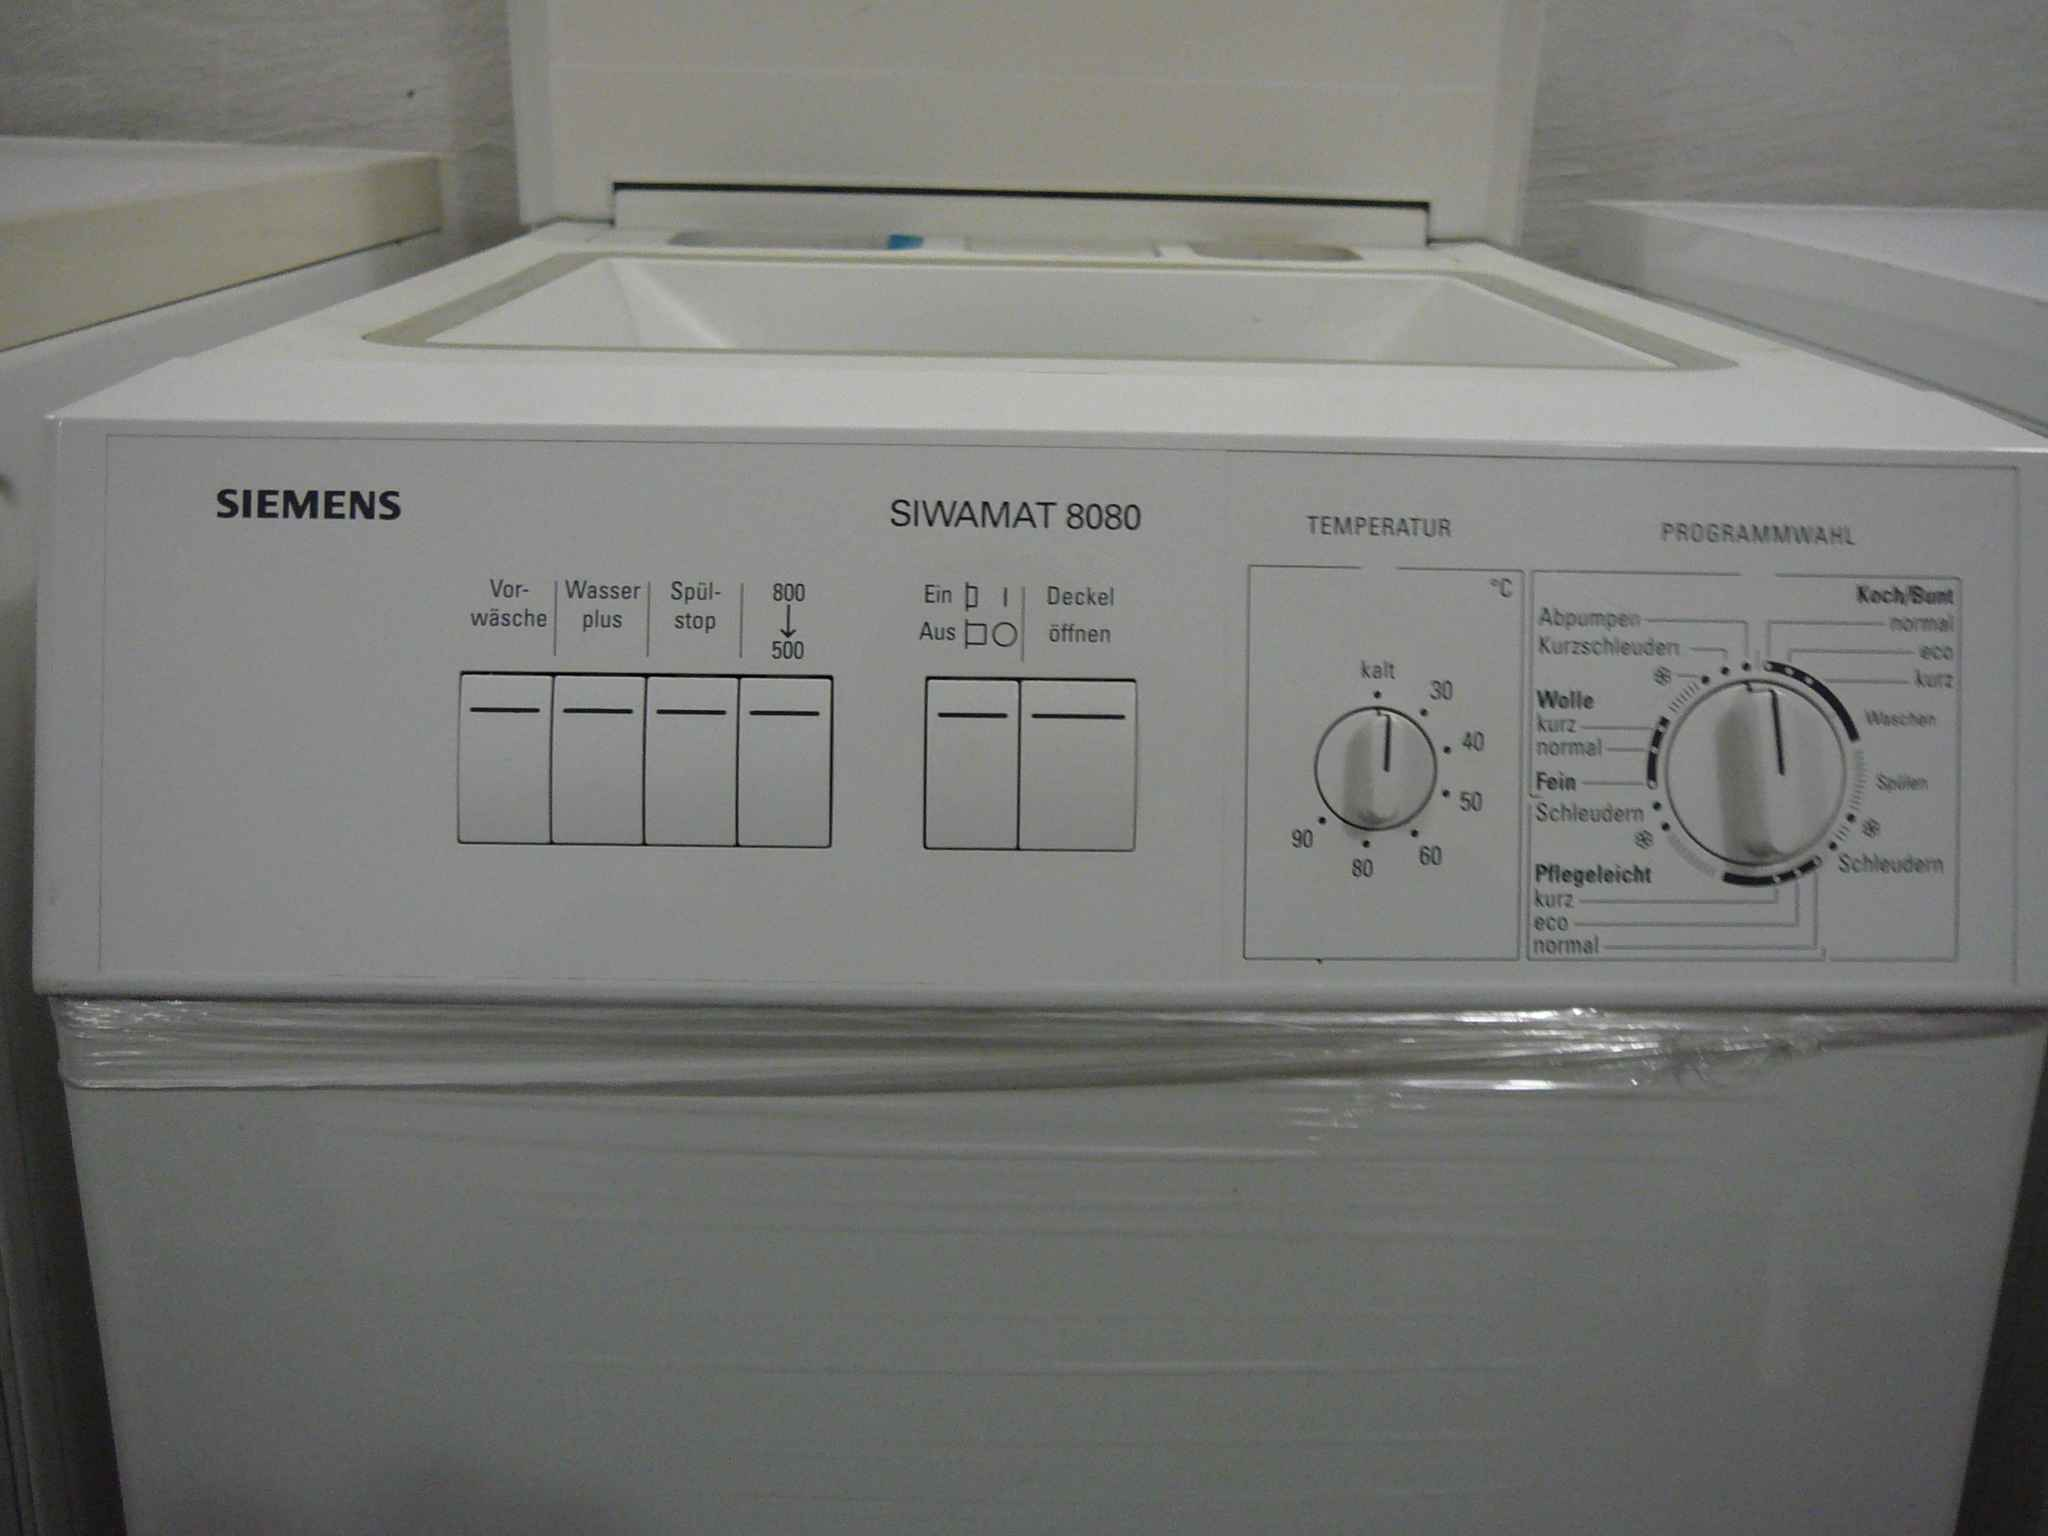 Siemens siwamat xt 1050 manual download.